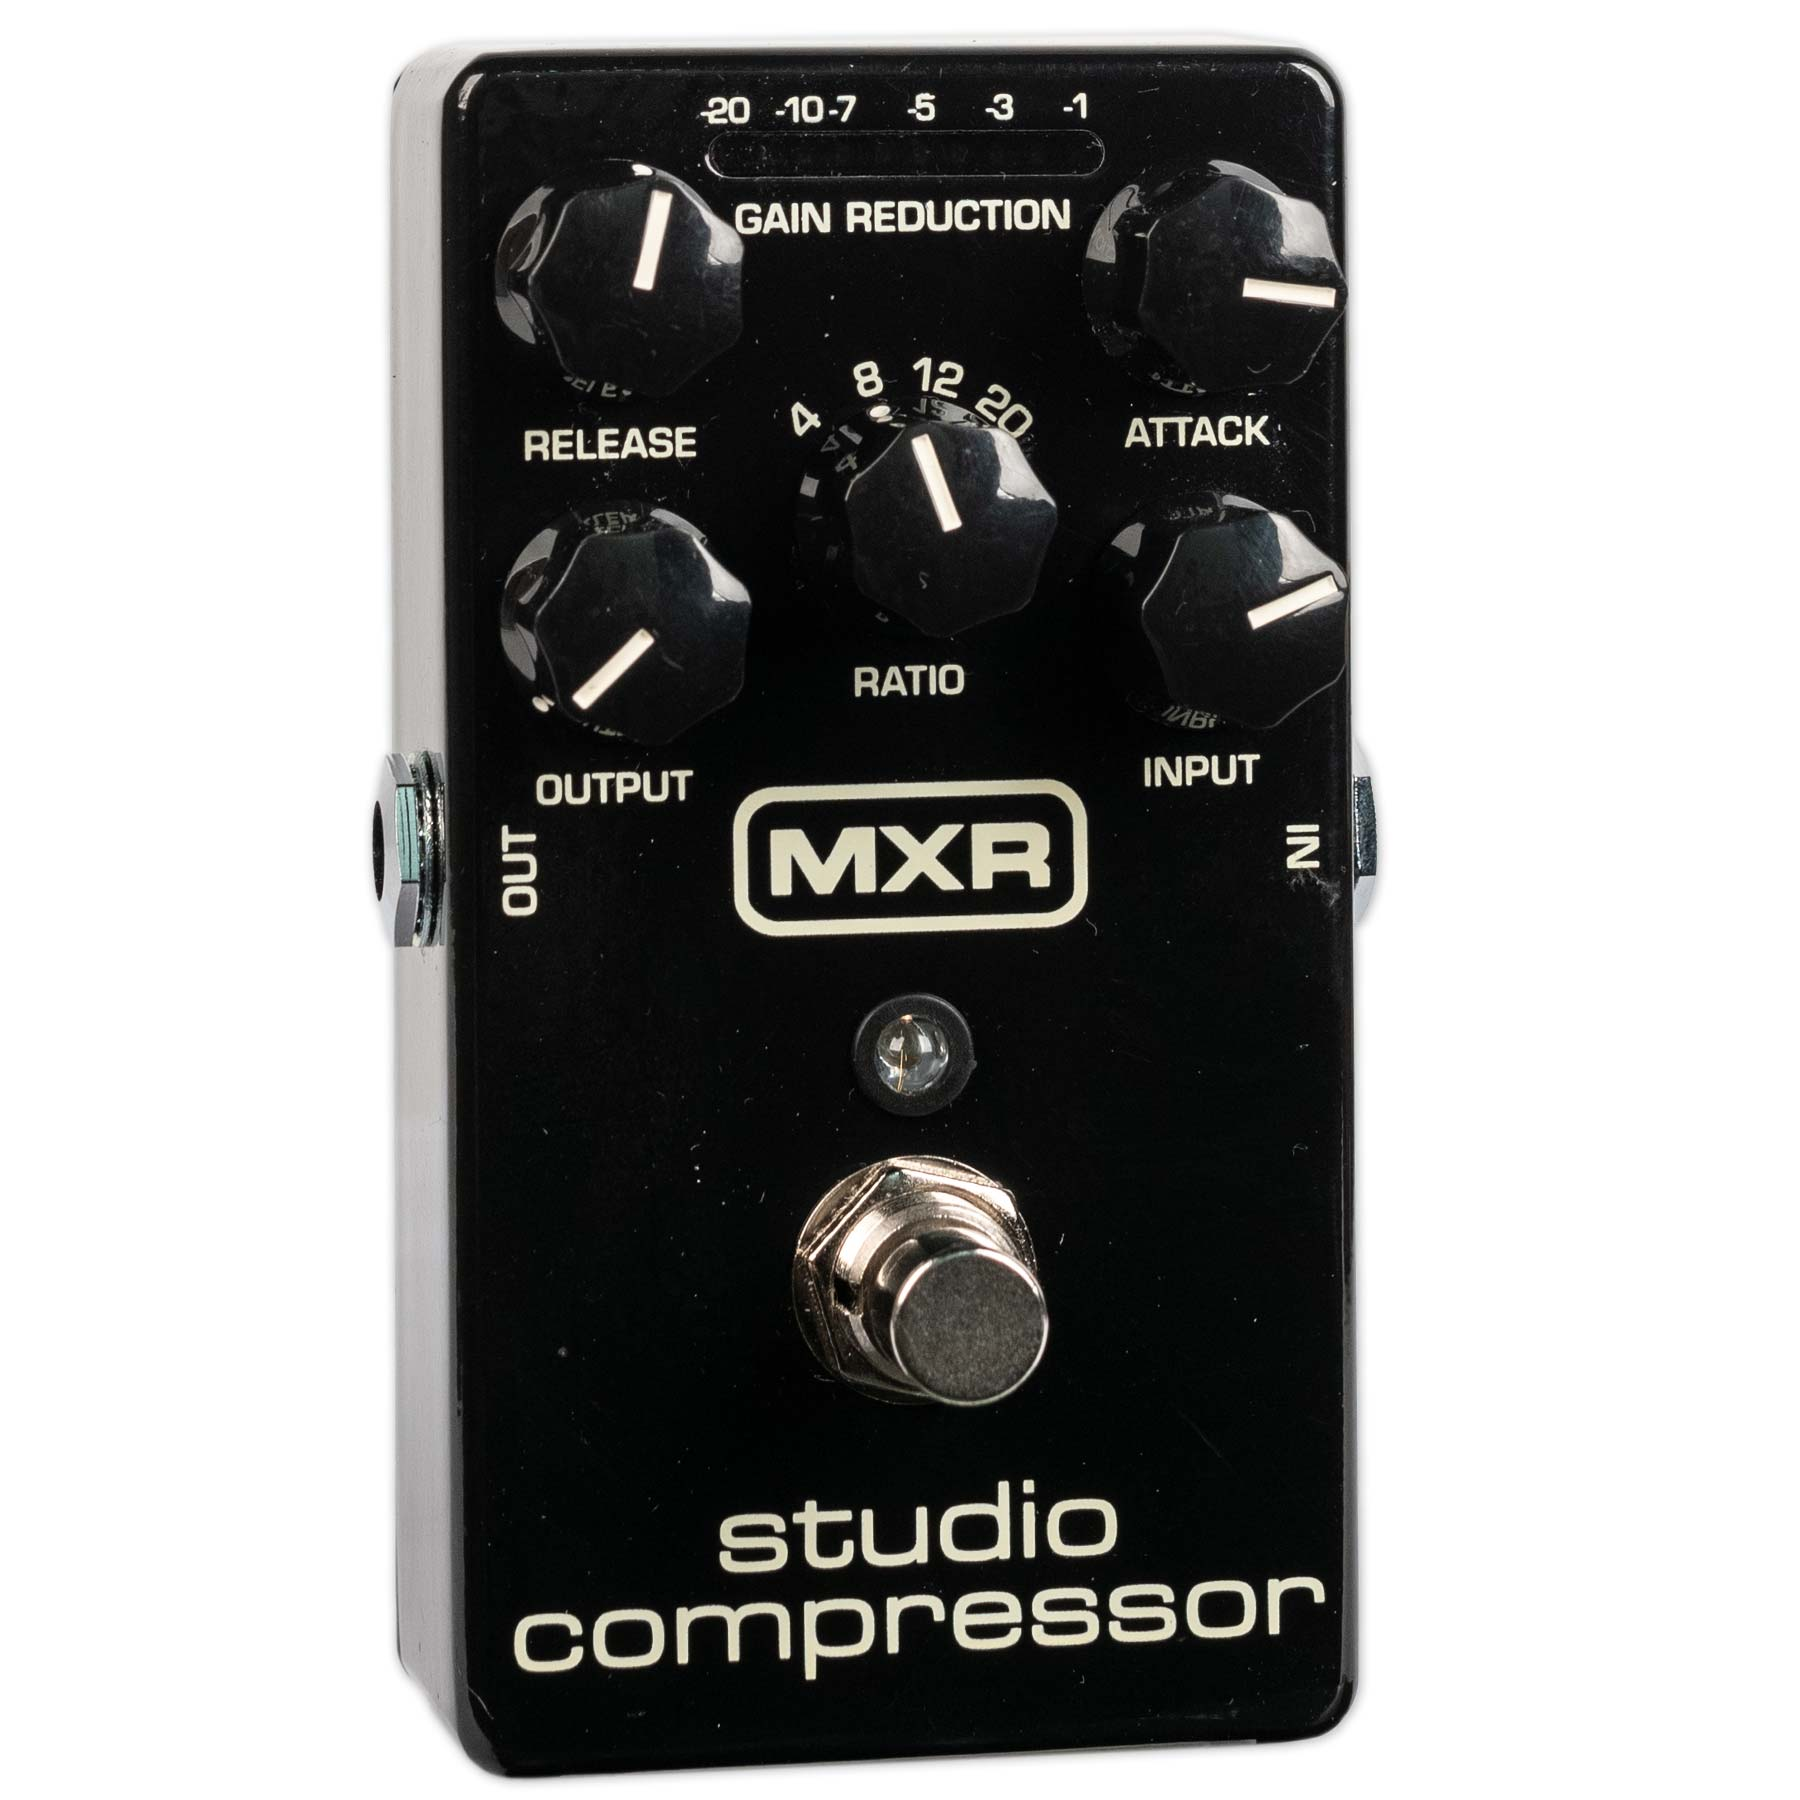 USED MXR STUDIO COMPRESSOR WITH BOX